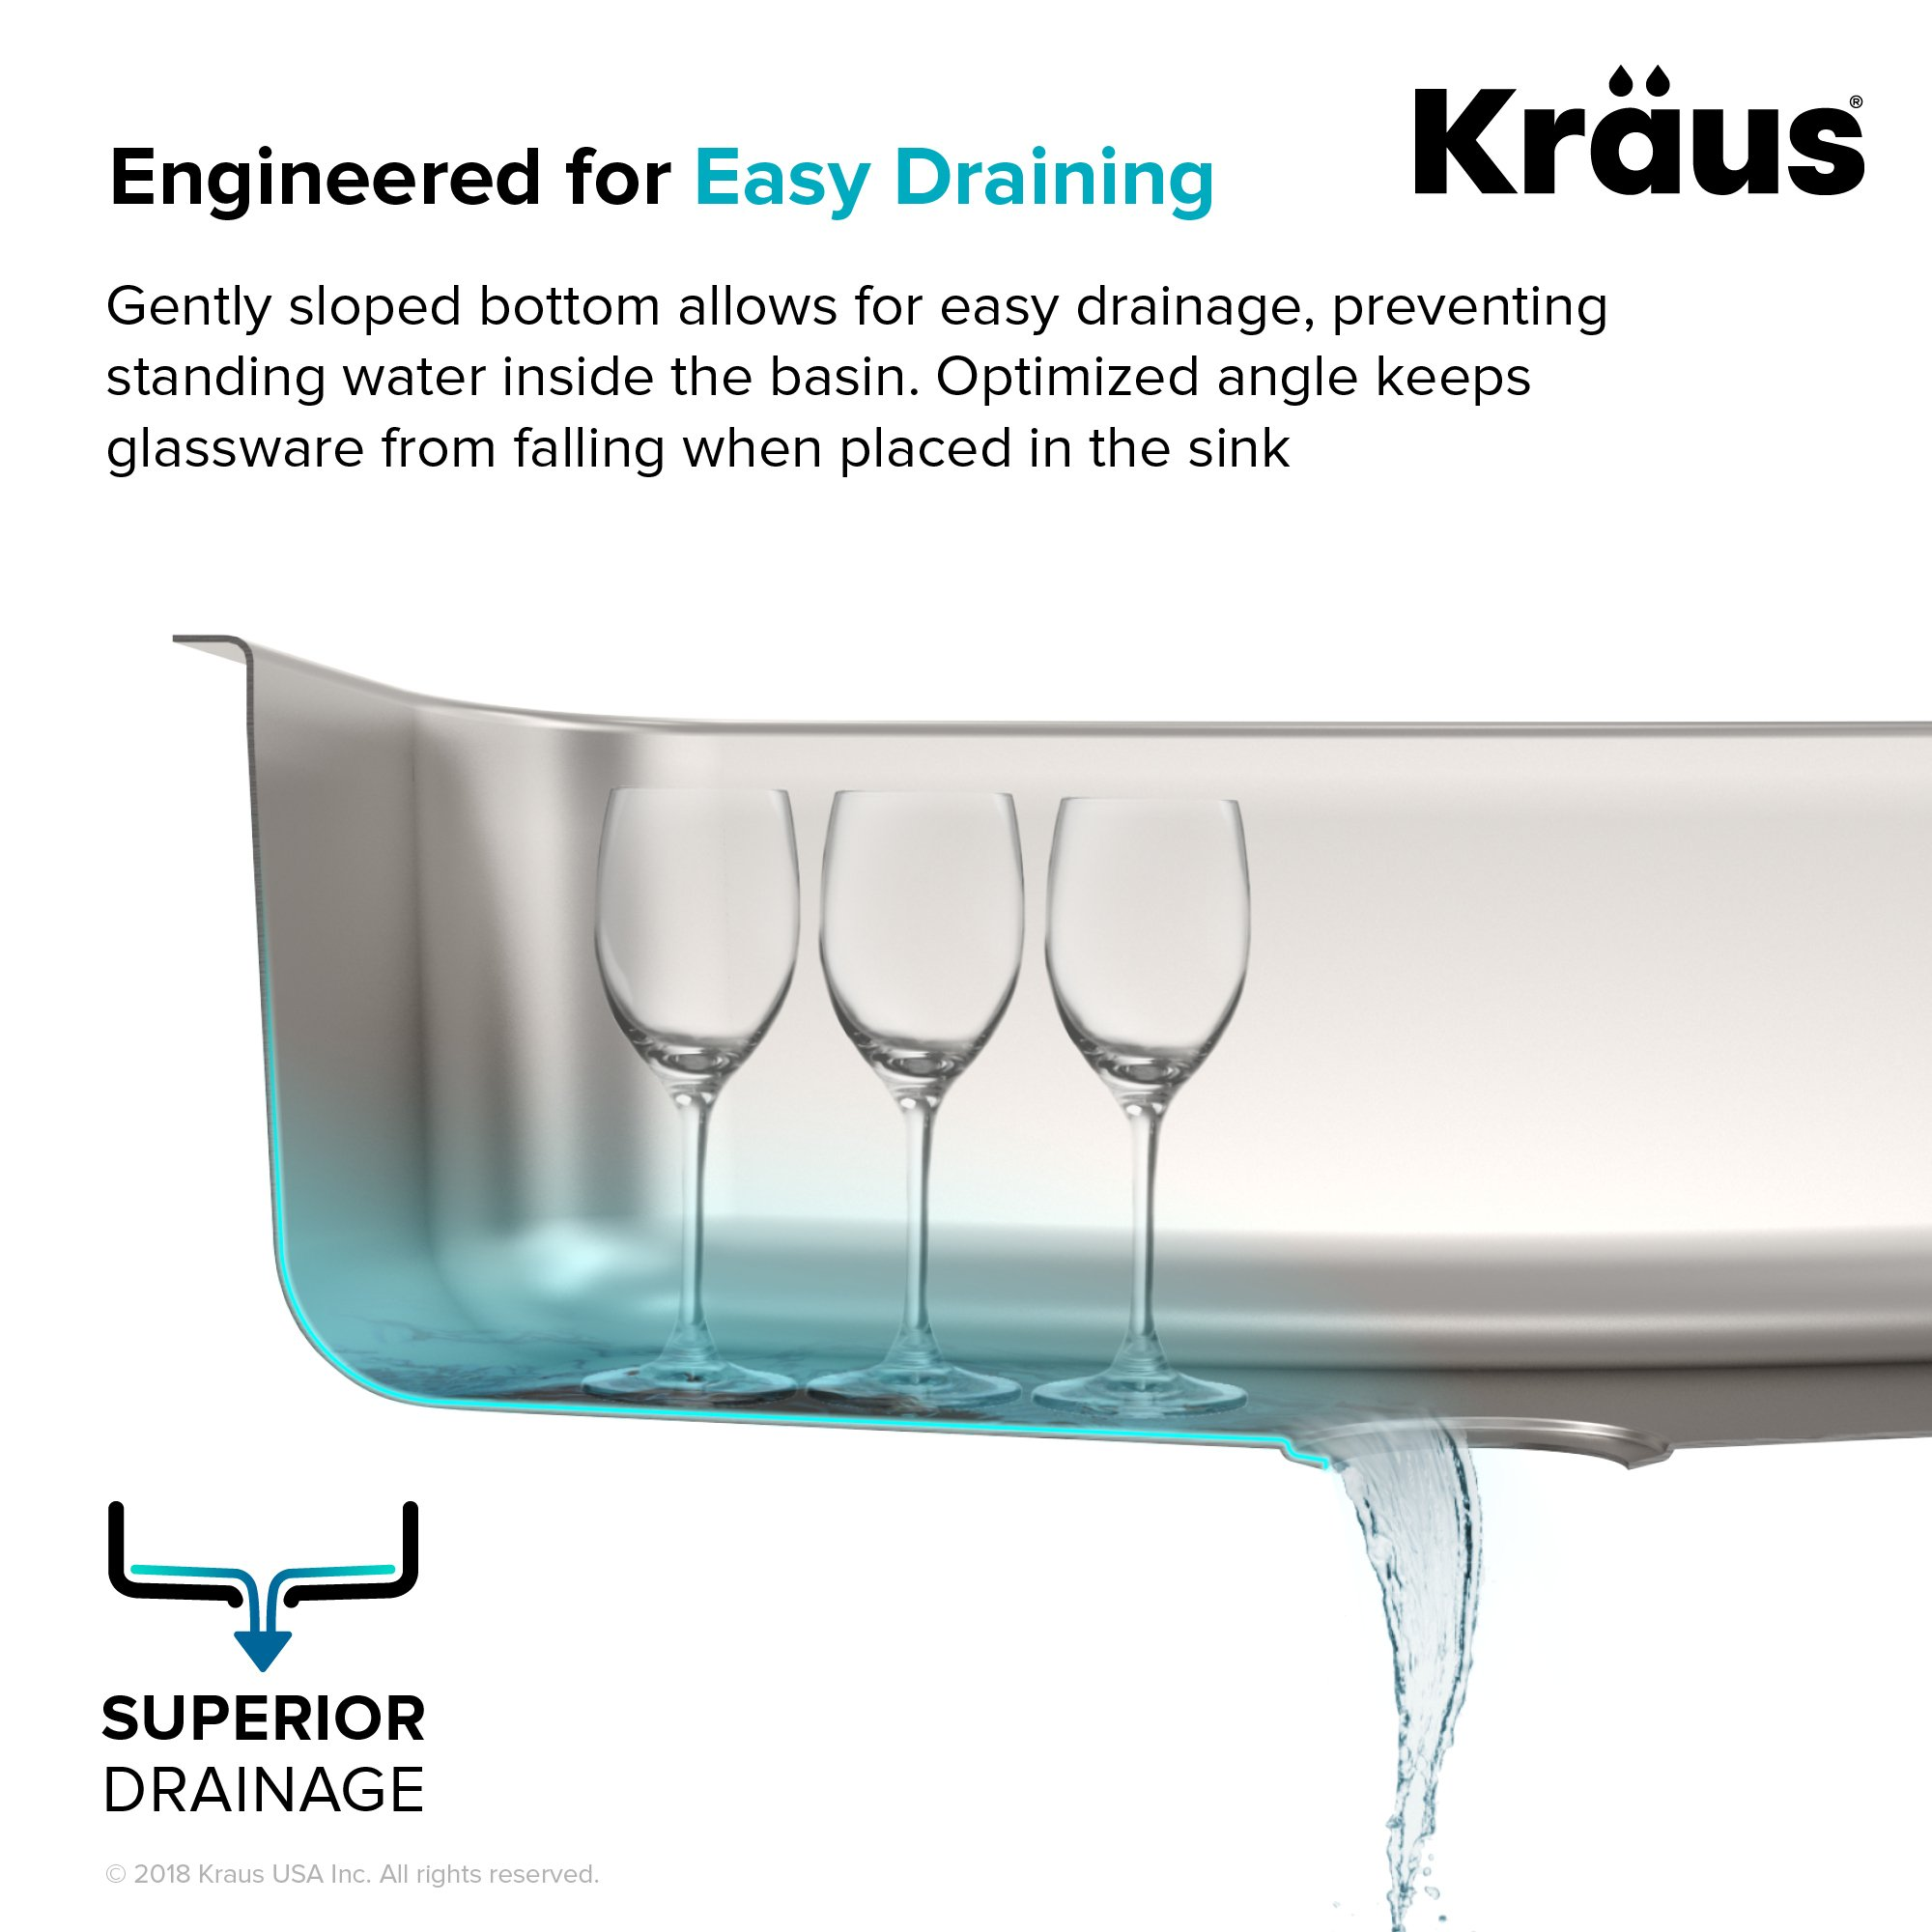 Kraus KBU12 23 inch Undermount Single Bowl 16 gauge Stainless Steel Kitchen Sink by Kraus (Image #6)